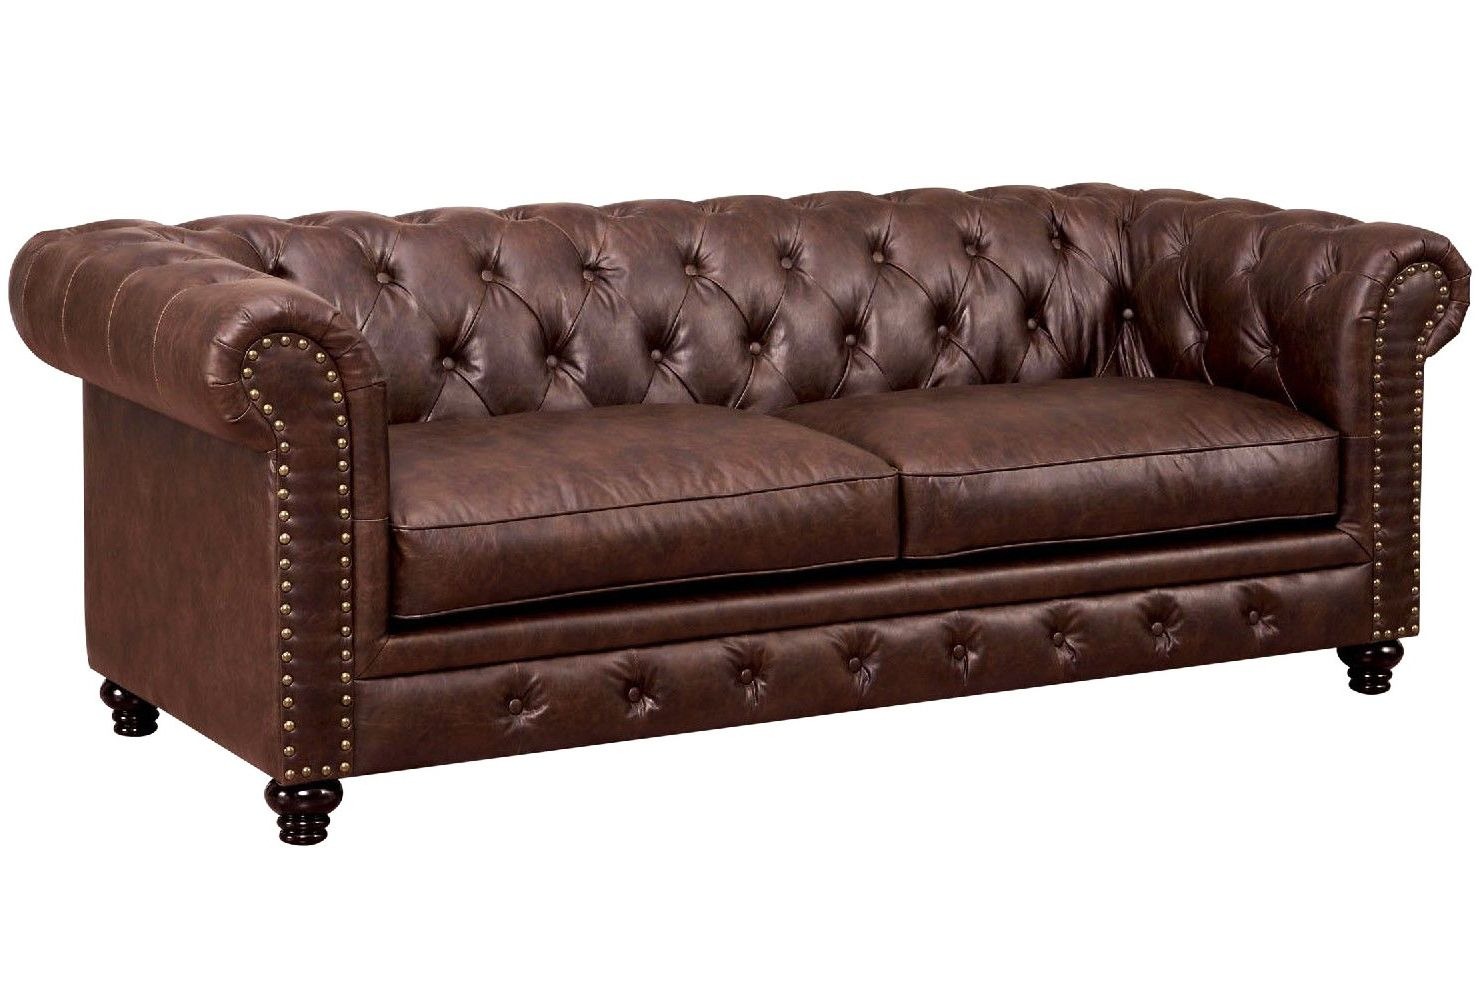 Eskridge Traditional Brown Chesterfield Sofa In Premium Pertaining To Chesterfield Sofas (View 11 of 15)